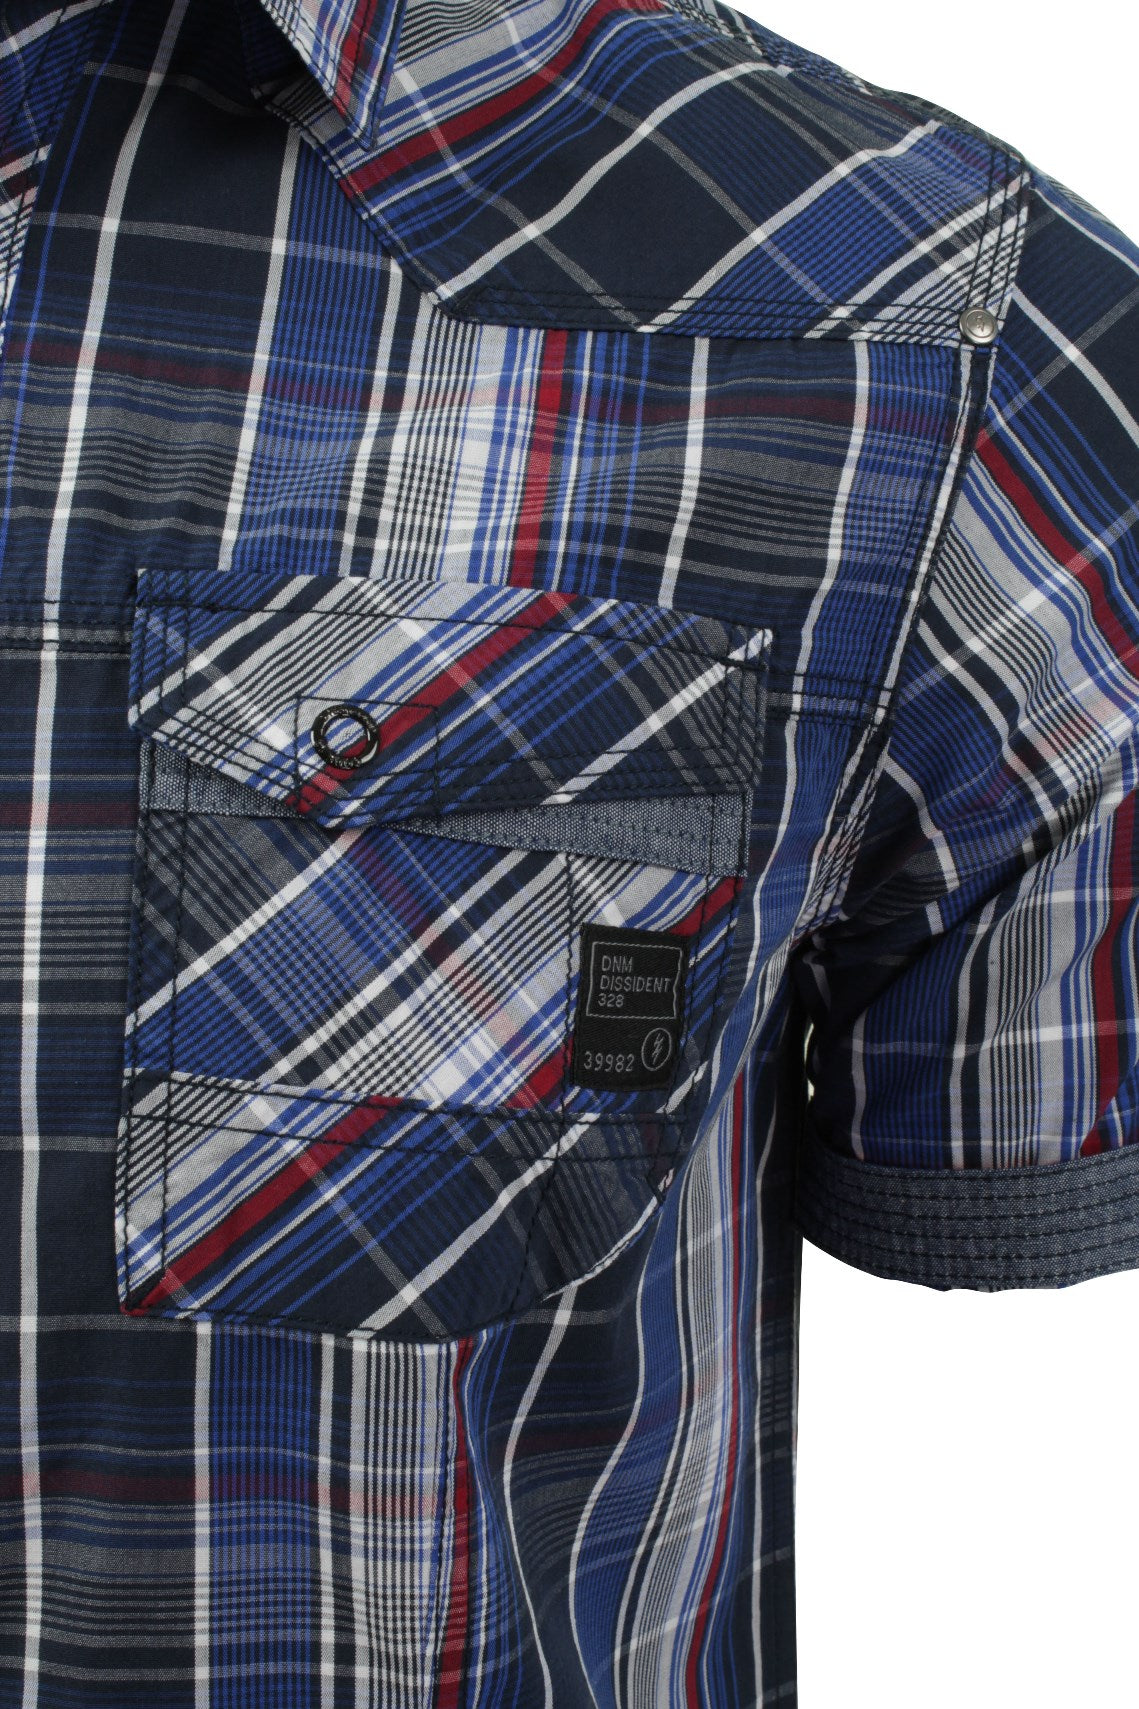 Mens Check Shirt by Dissident 'Valencia' Short Sleeved-2